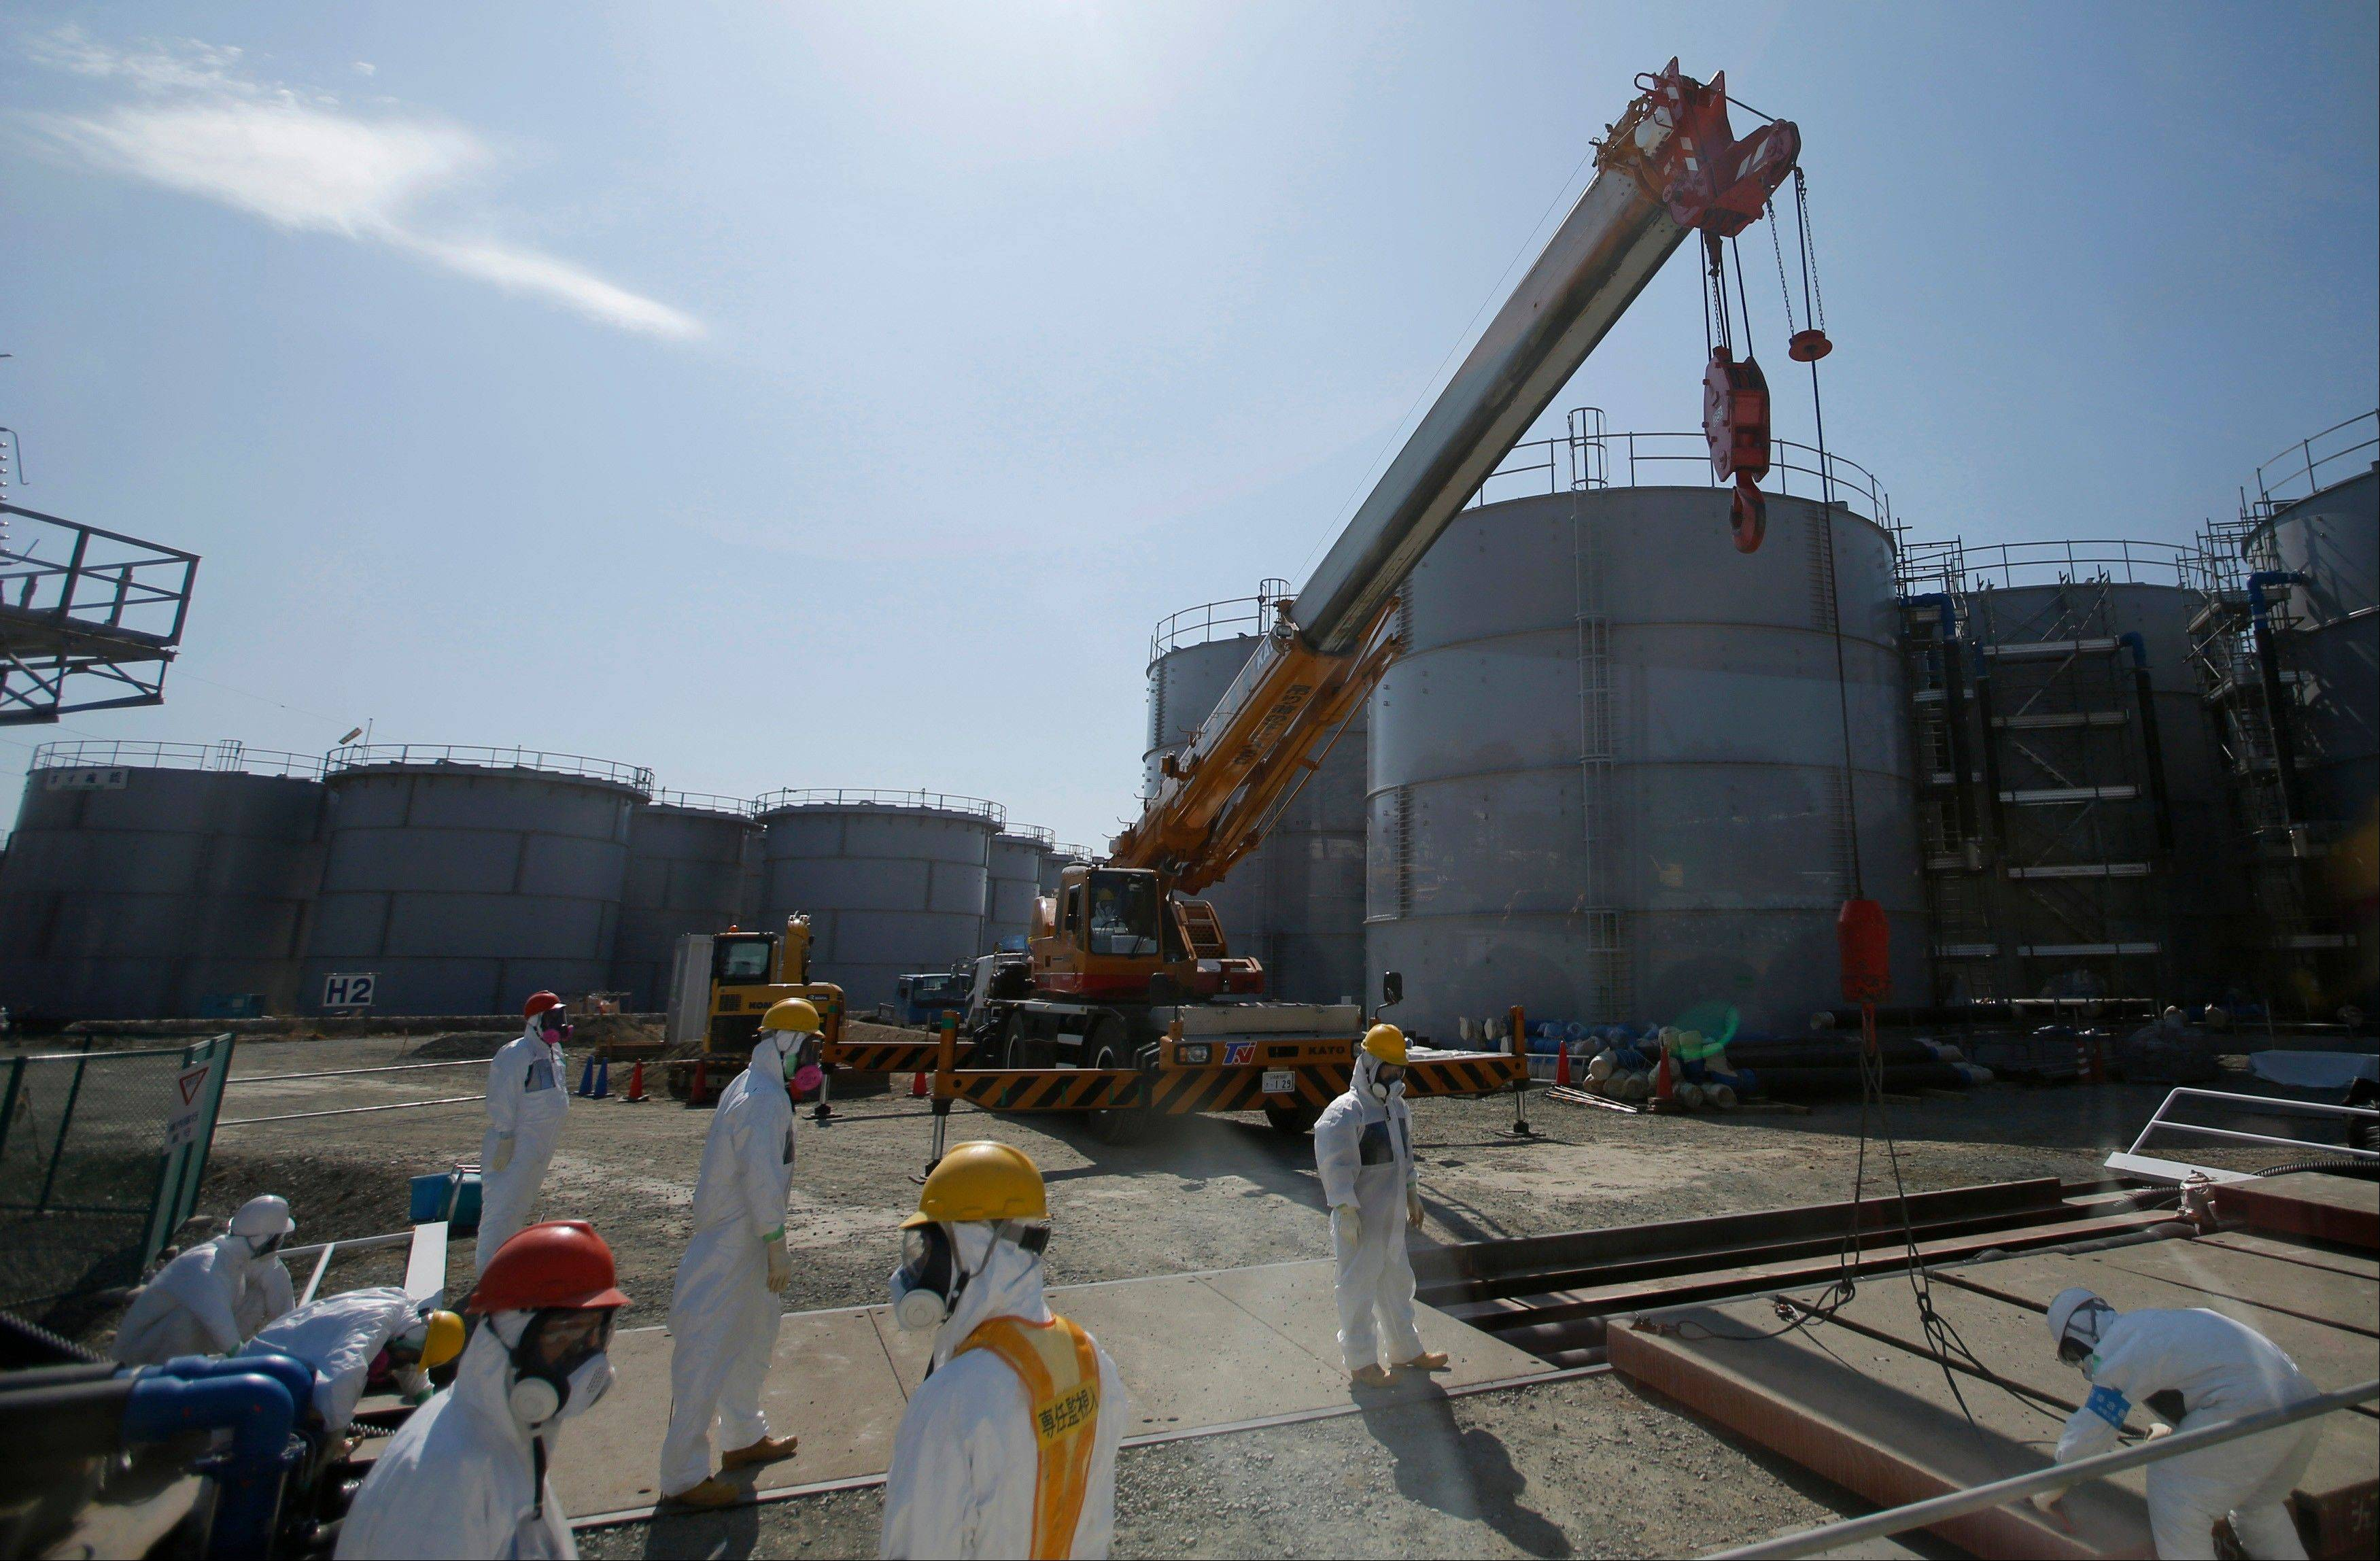 Workers wearing protective gear take a survey near tanks of radiation contaminated water at Tokyo Electric Power Co.'s Fukushima Dai-ichi nuclear power plant in Okuma town, northeast of Tokyo. The operator of the wrecked Fukushima nuclear power plant says it is struggling with its latest efforts to stop contaminated underground water leaks from running into the sea.